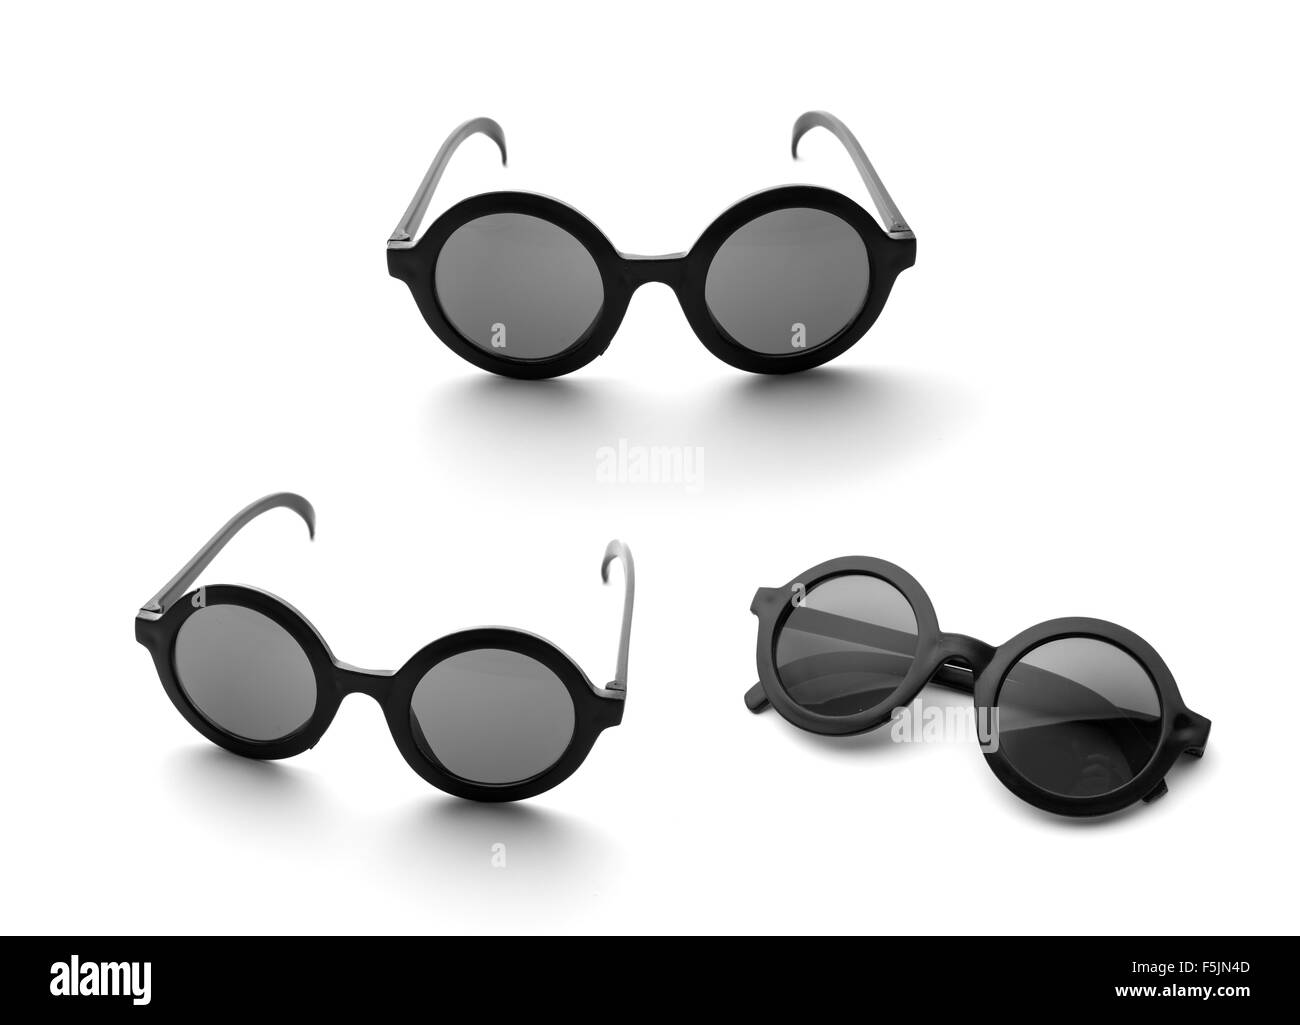 35f7ab0cb66 Three pairs of black round glasses isolated on white background - Stock  Image